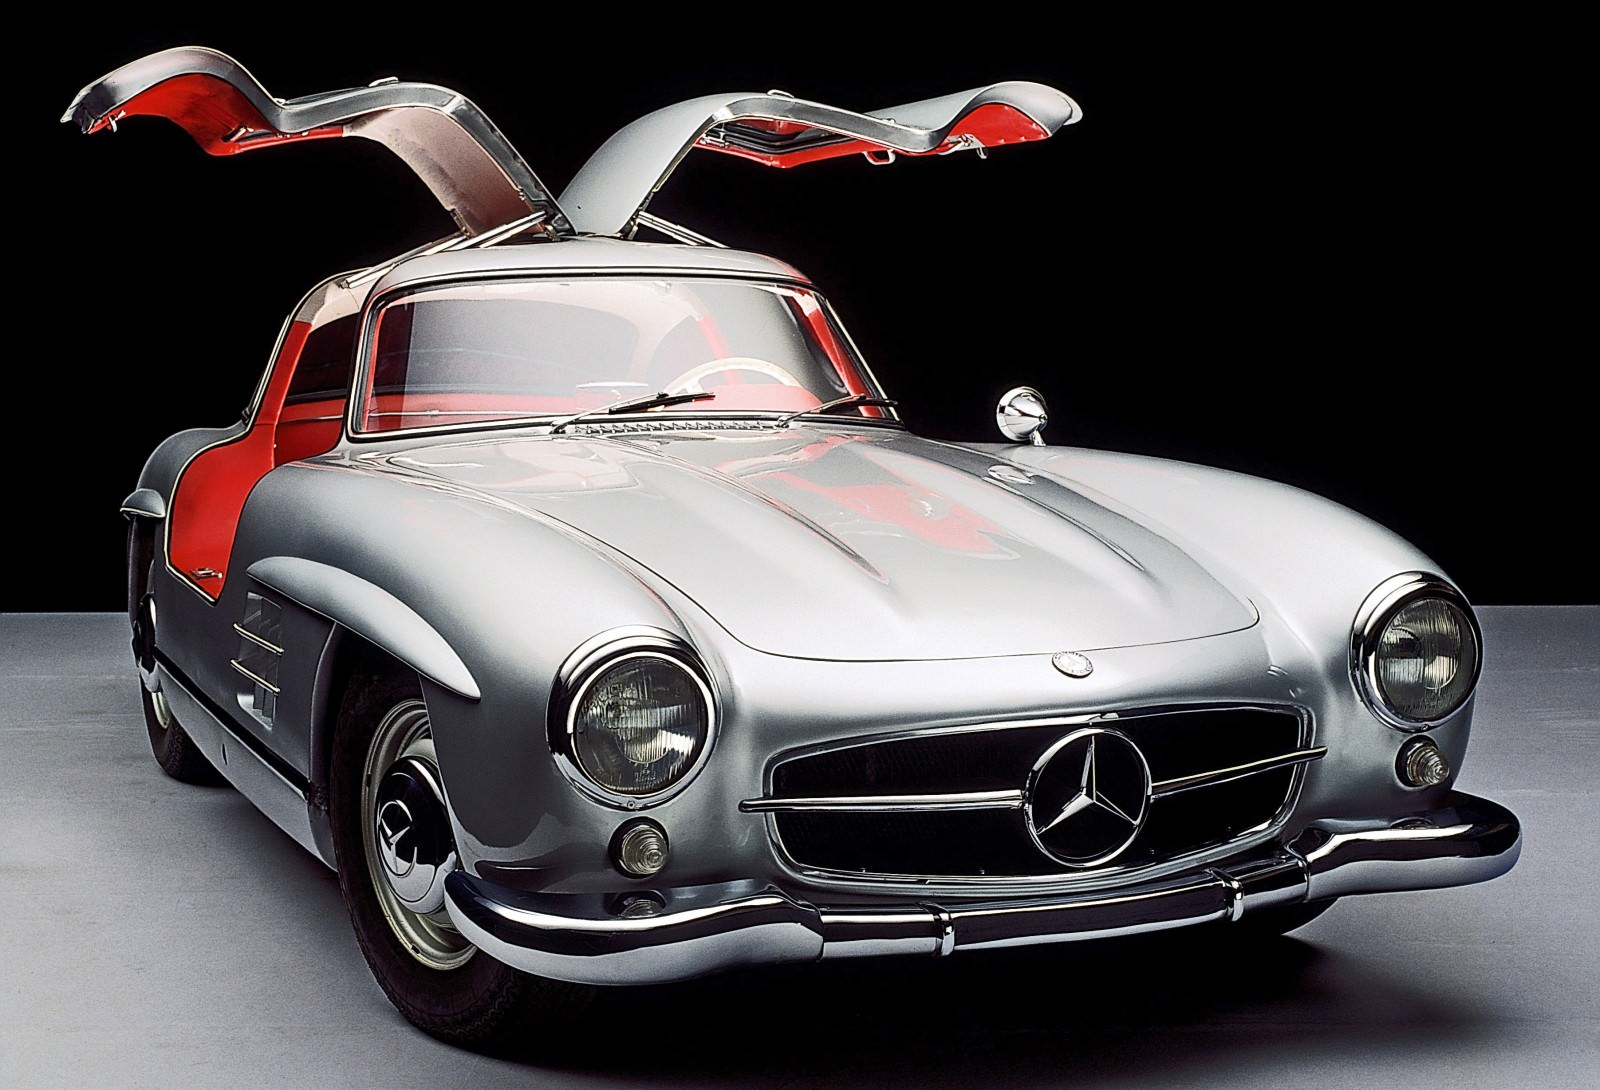 Mercedes-Benz Gullwing Supercar Evolution